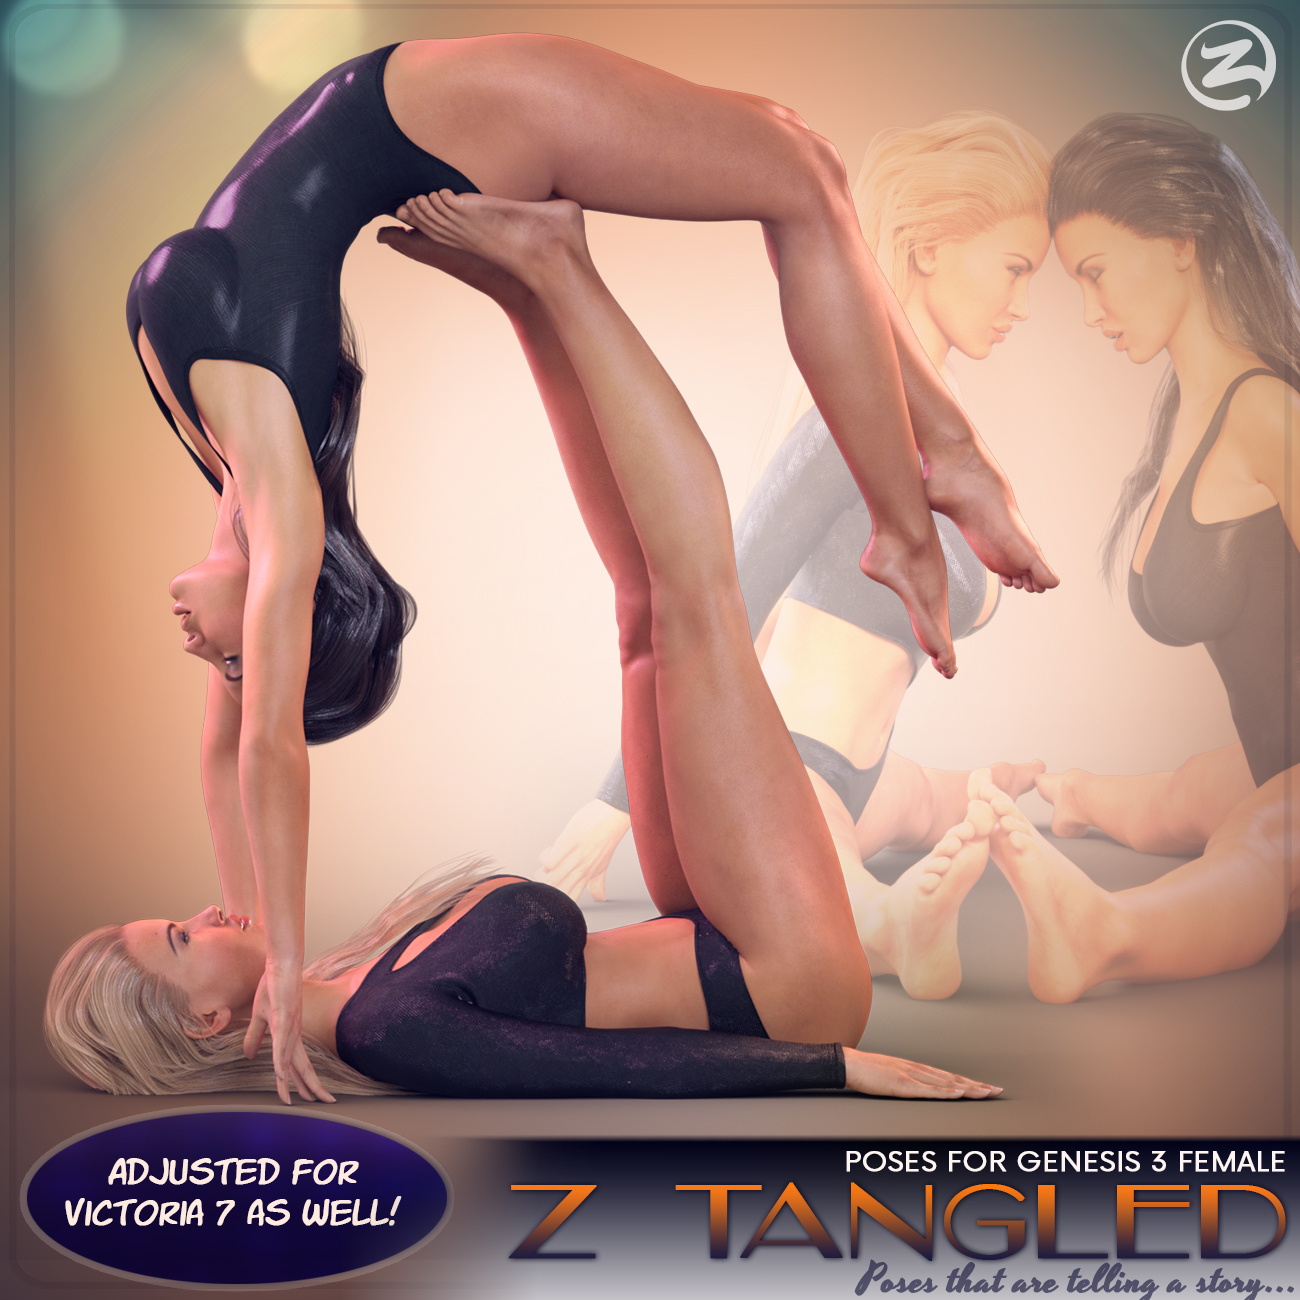 Z Tangled - Couple poses for Genesis 3 Female & Victoria 7